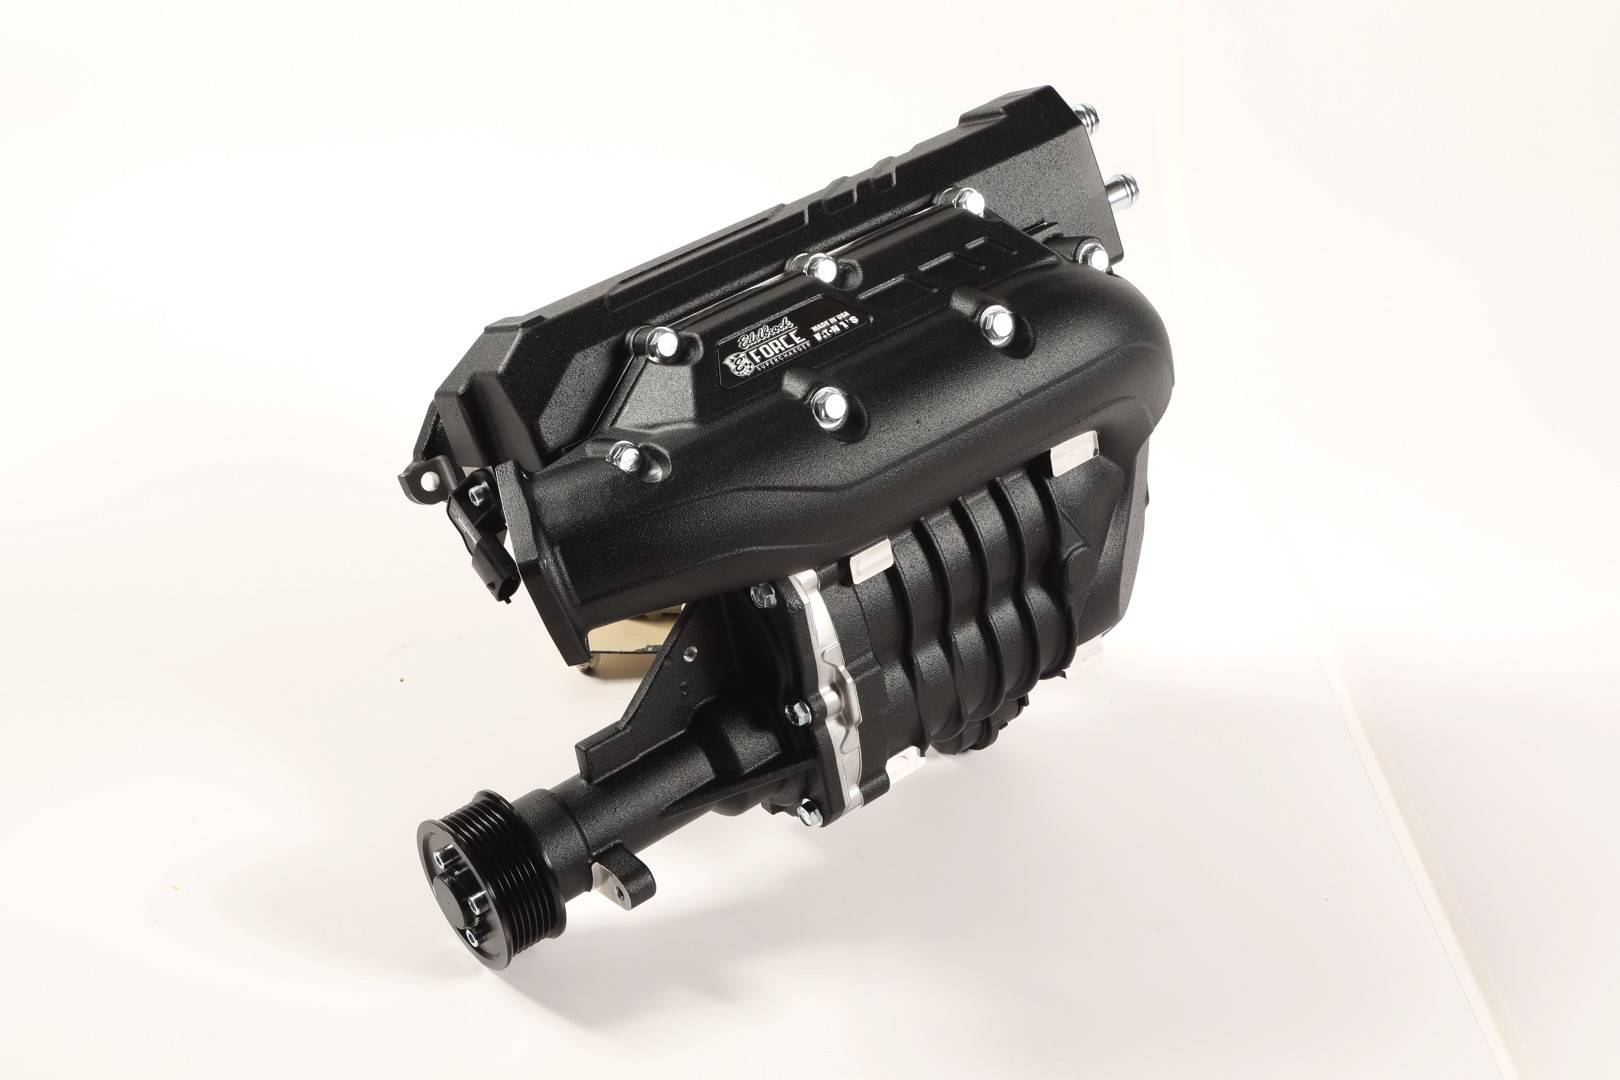 Edelbrock Mazda MX-5 Miata E-Force Supercharger Kit Fits Under the Stock Hood - autoevolution